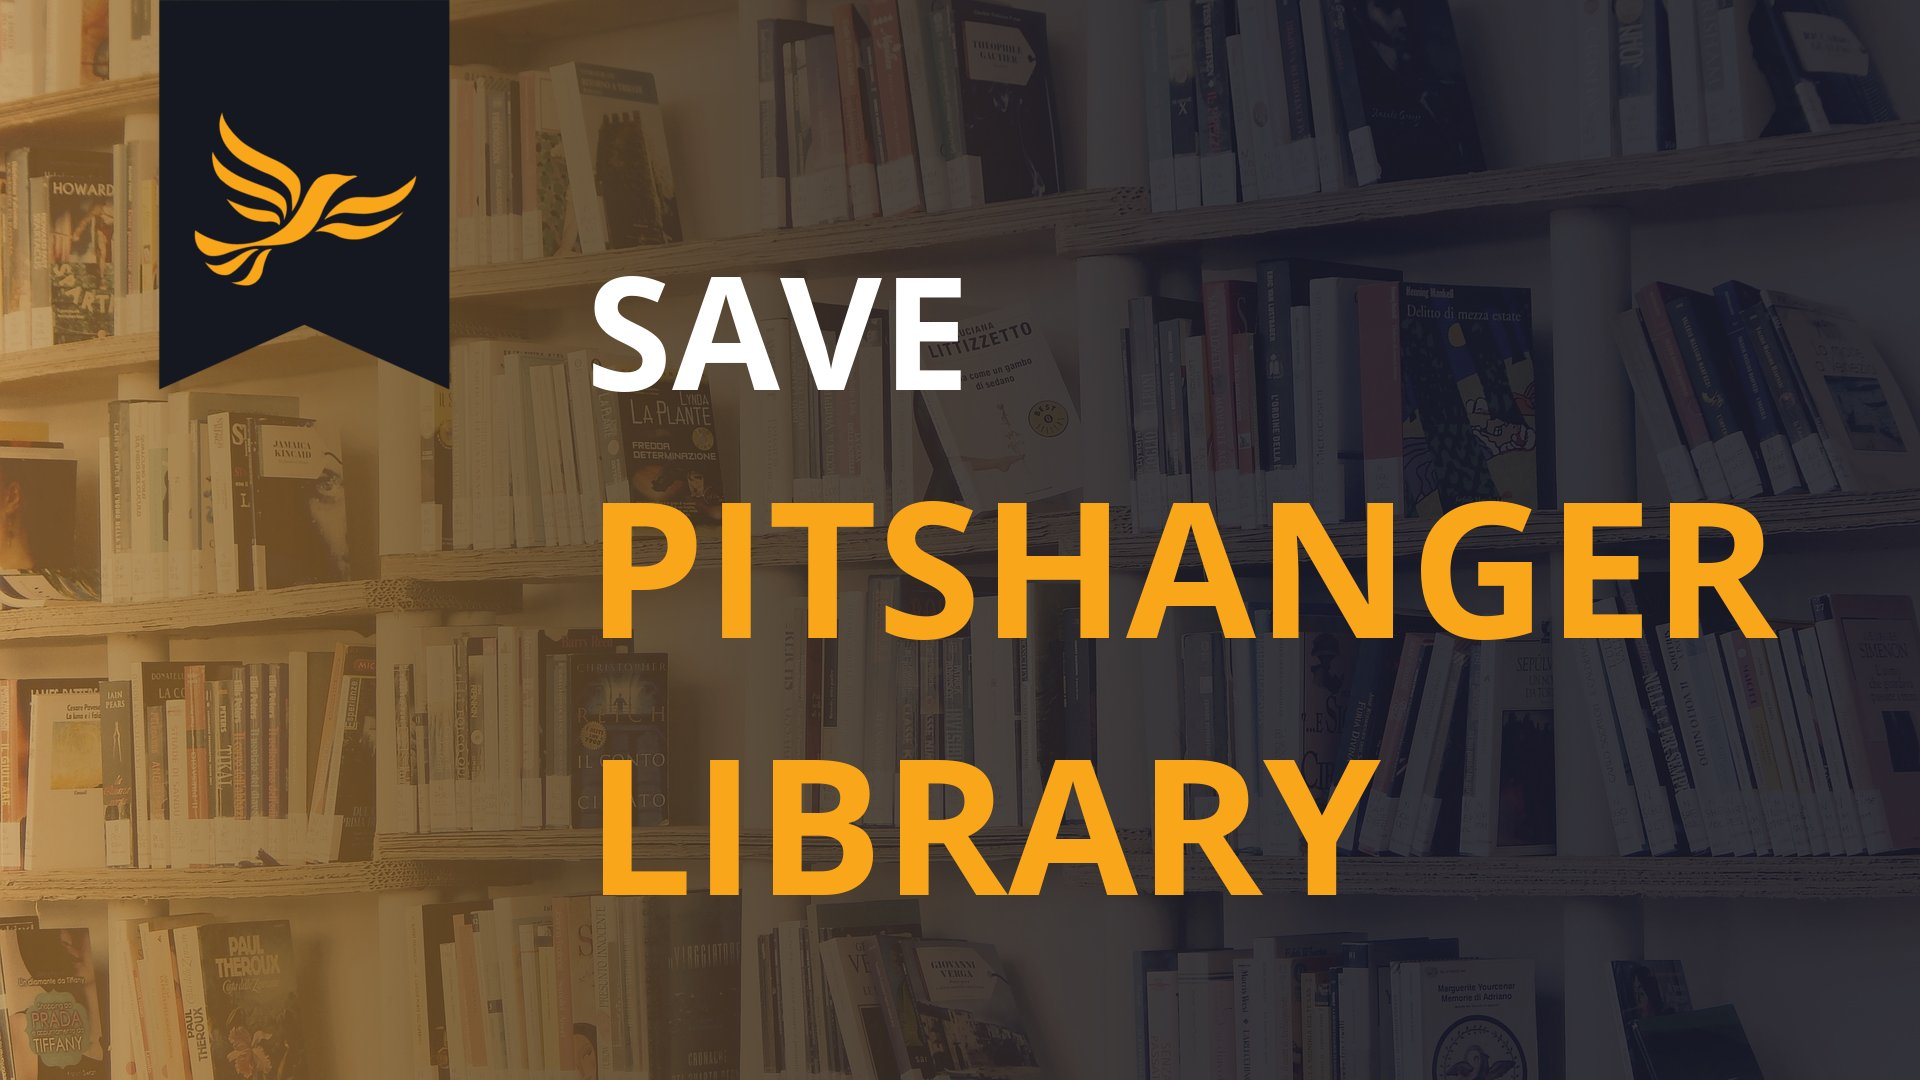 Ealing Liberal Democrats say NO to Pitshanger Library closure